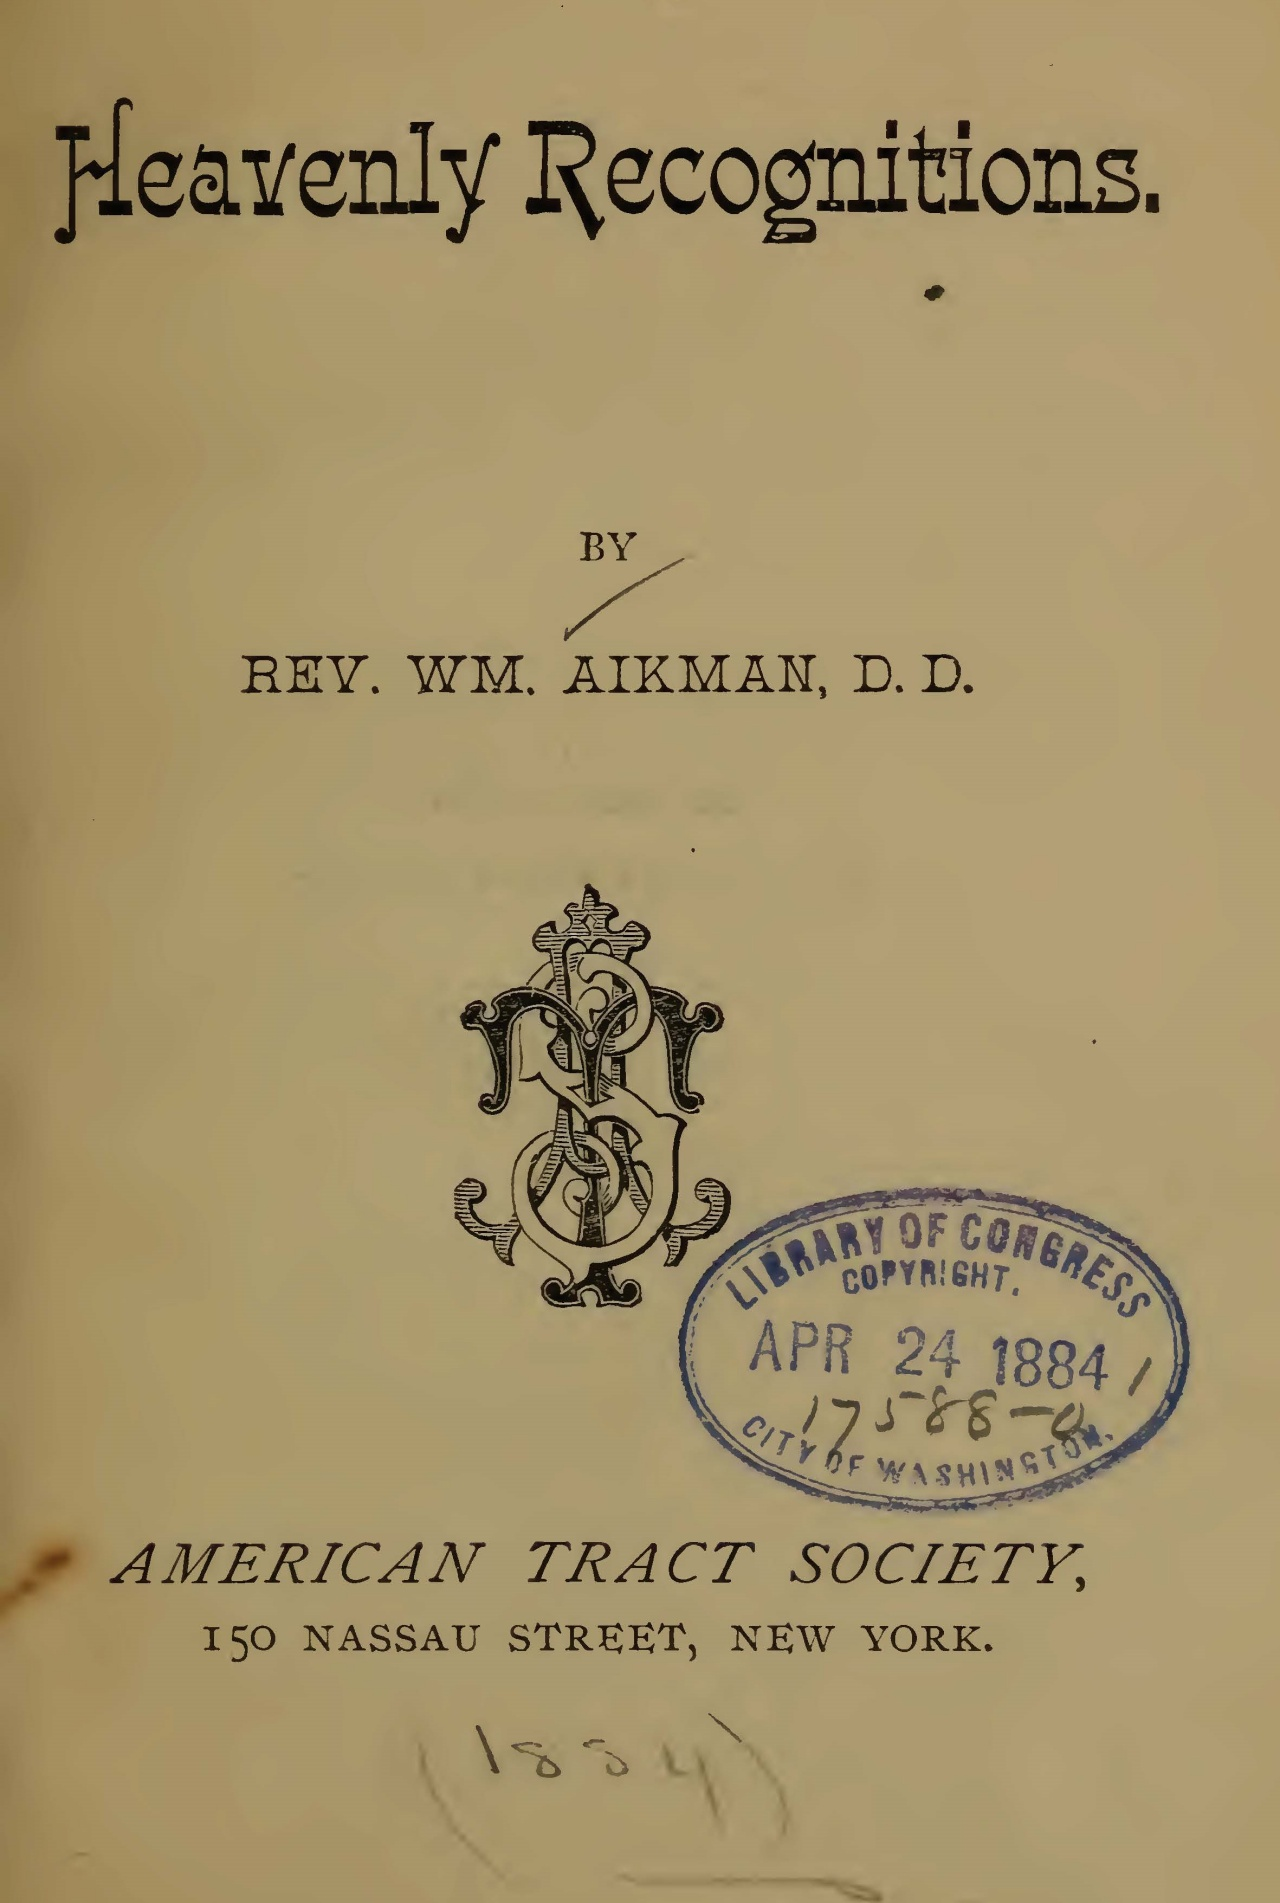 Aikman, William, Heavenly Recognitions Title Page.jpg